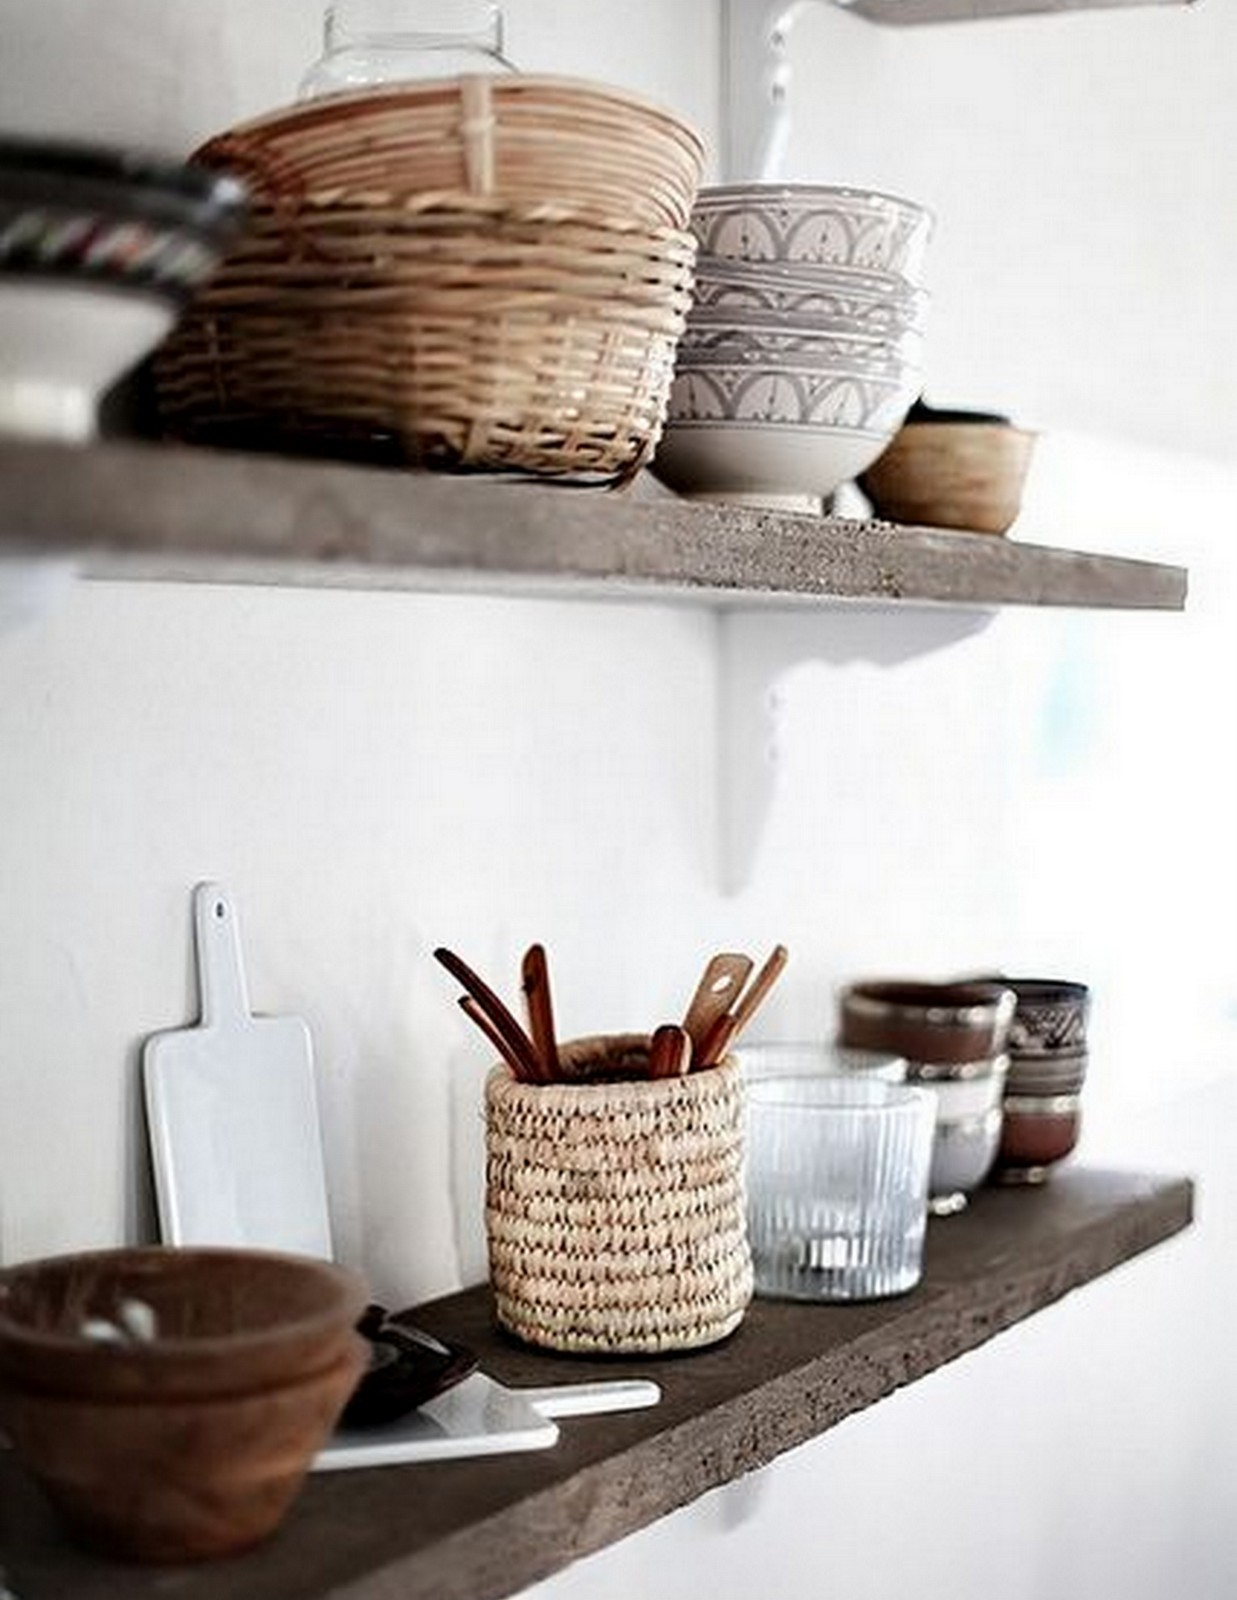 Rustic Shelves + Moroccan Pottery